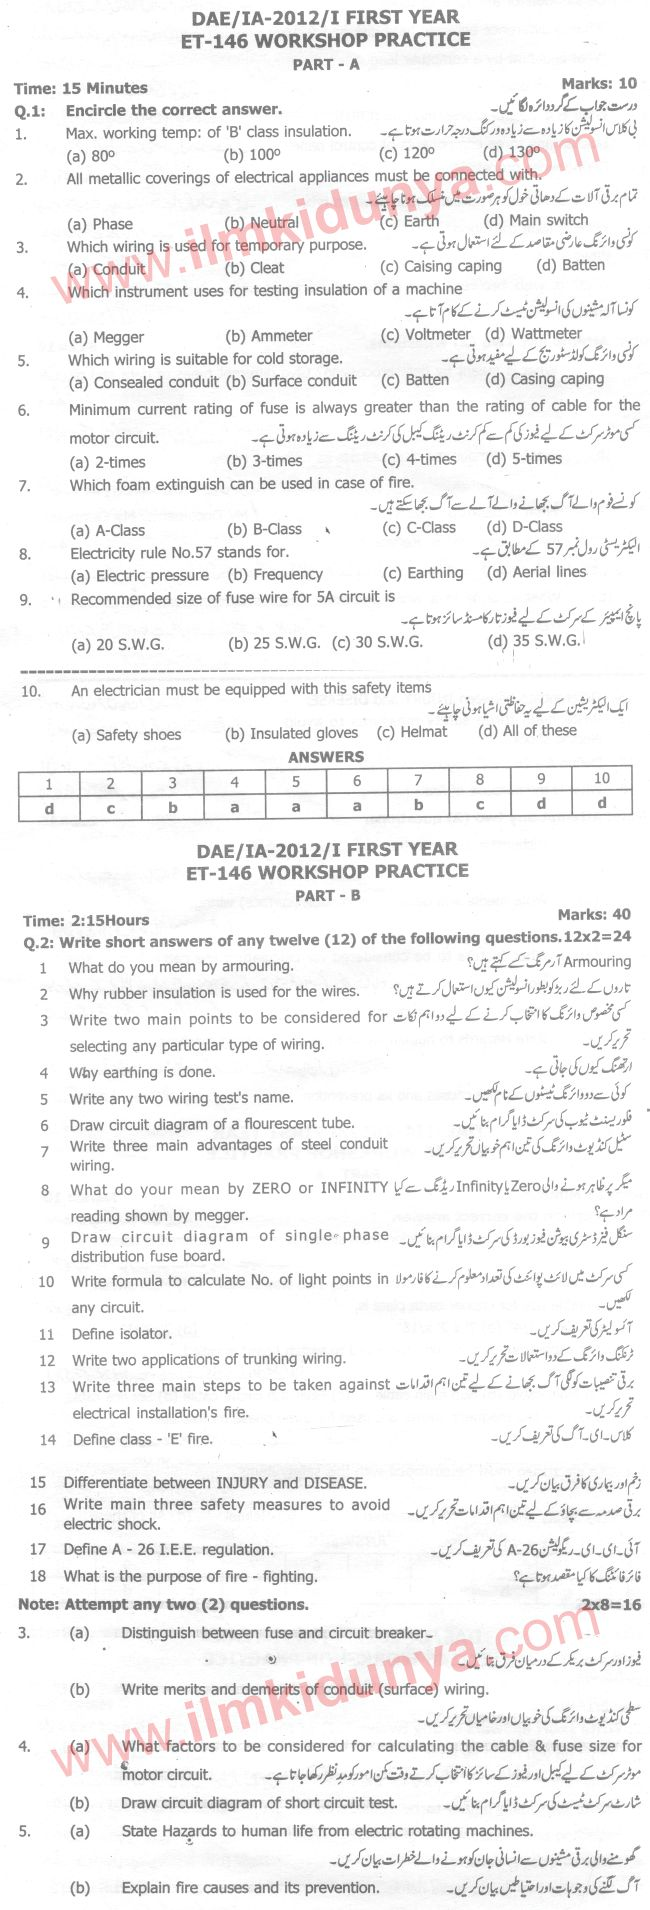 DAE IA 2012 Past Papers Electrical 1st Year ET 146